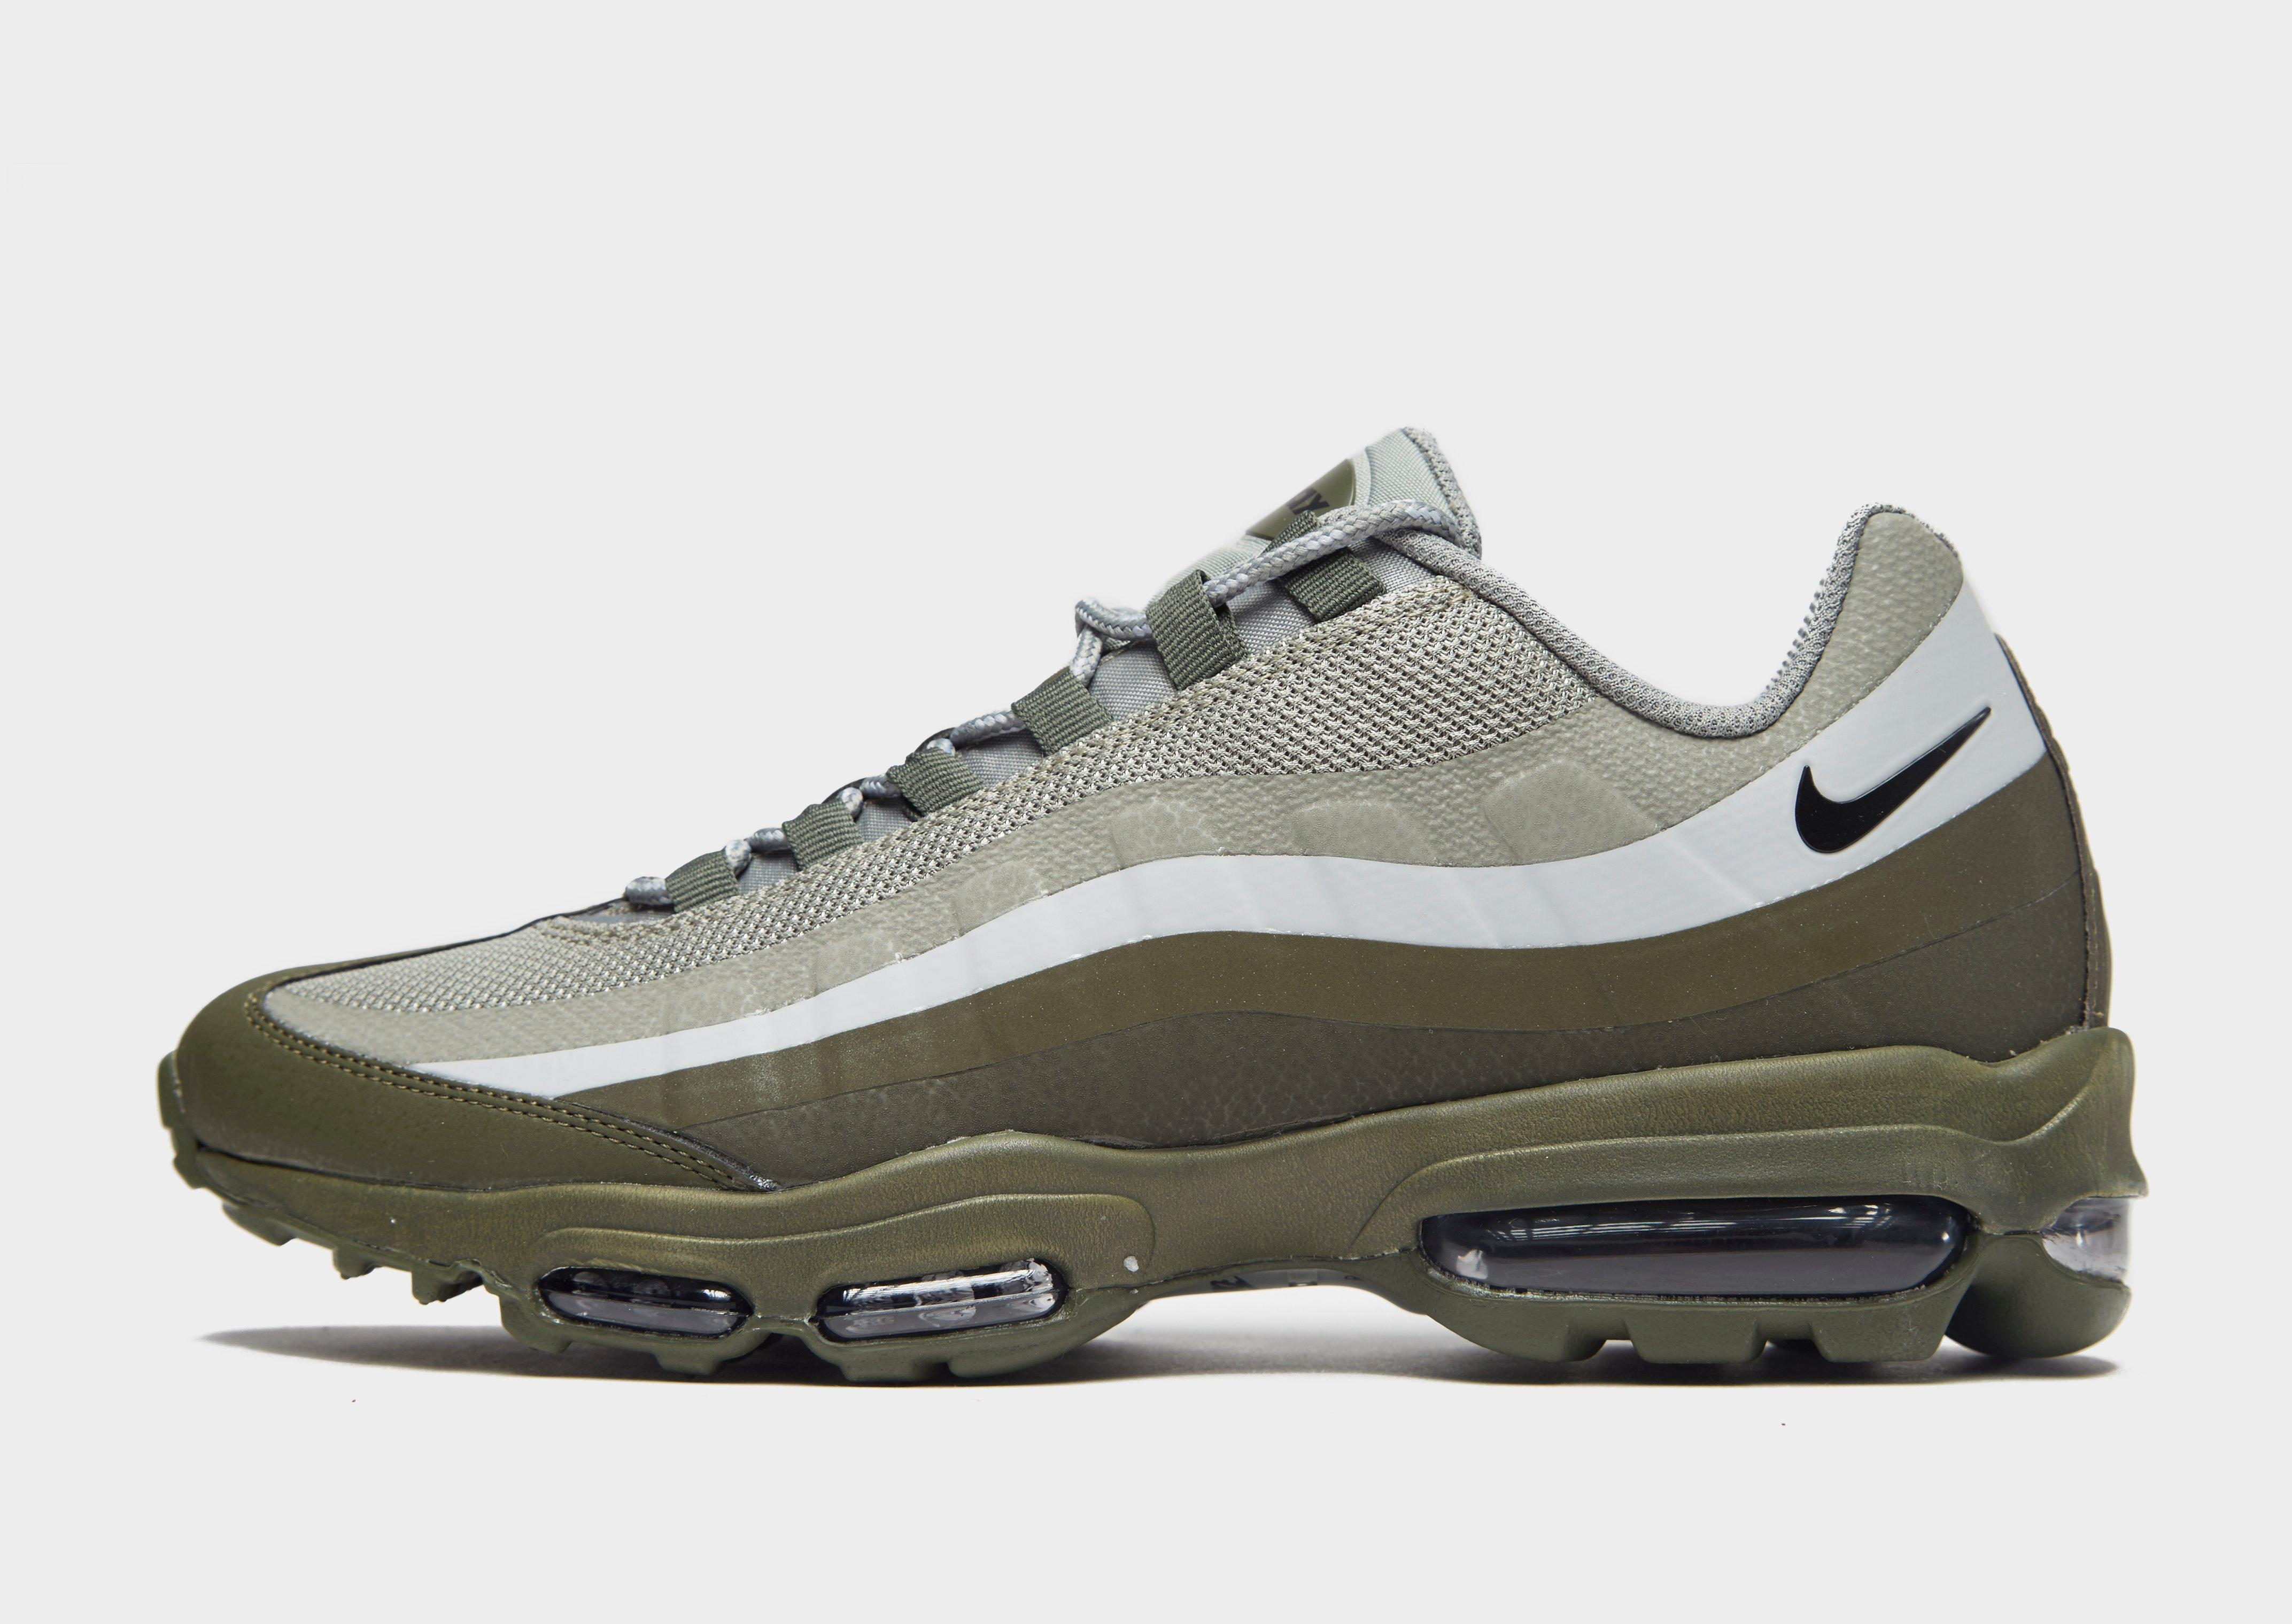 Nike Synthetic Air Max 95 Ultra Se for